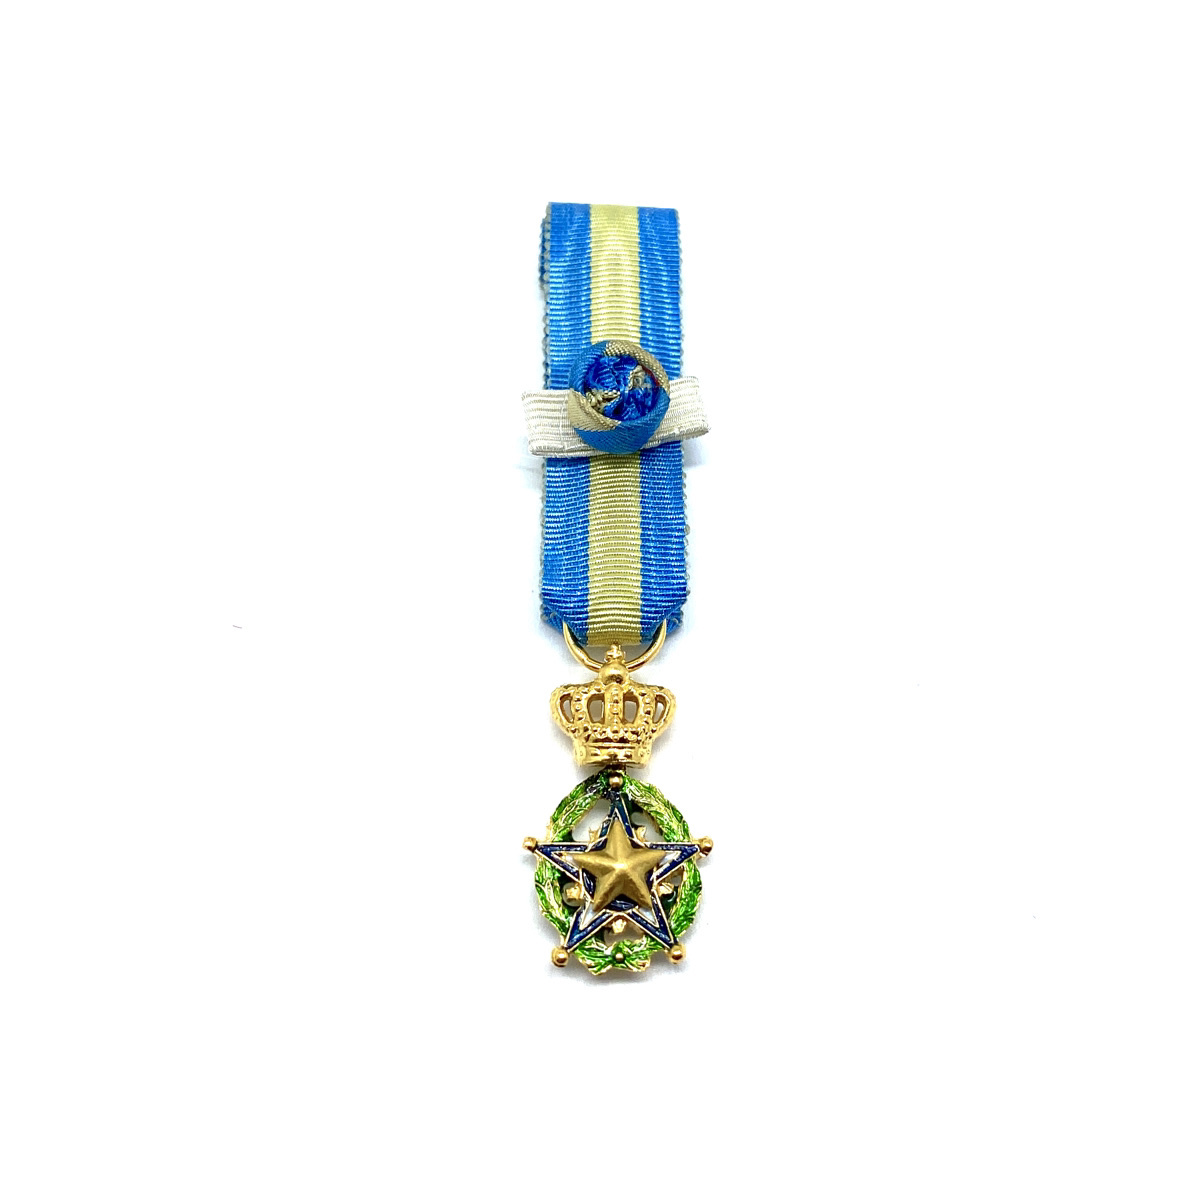 Commander in the Order of the African Star